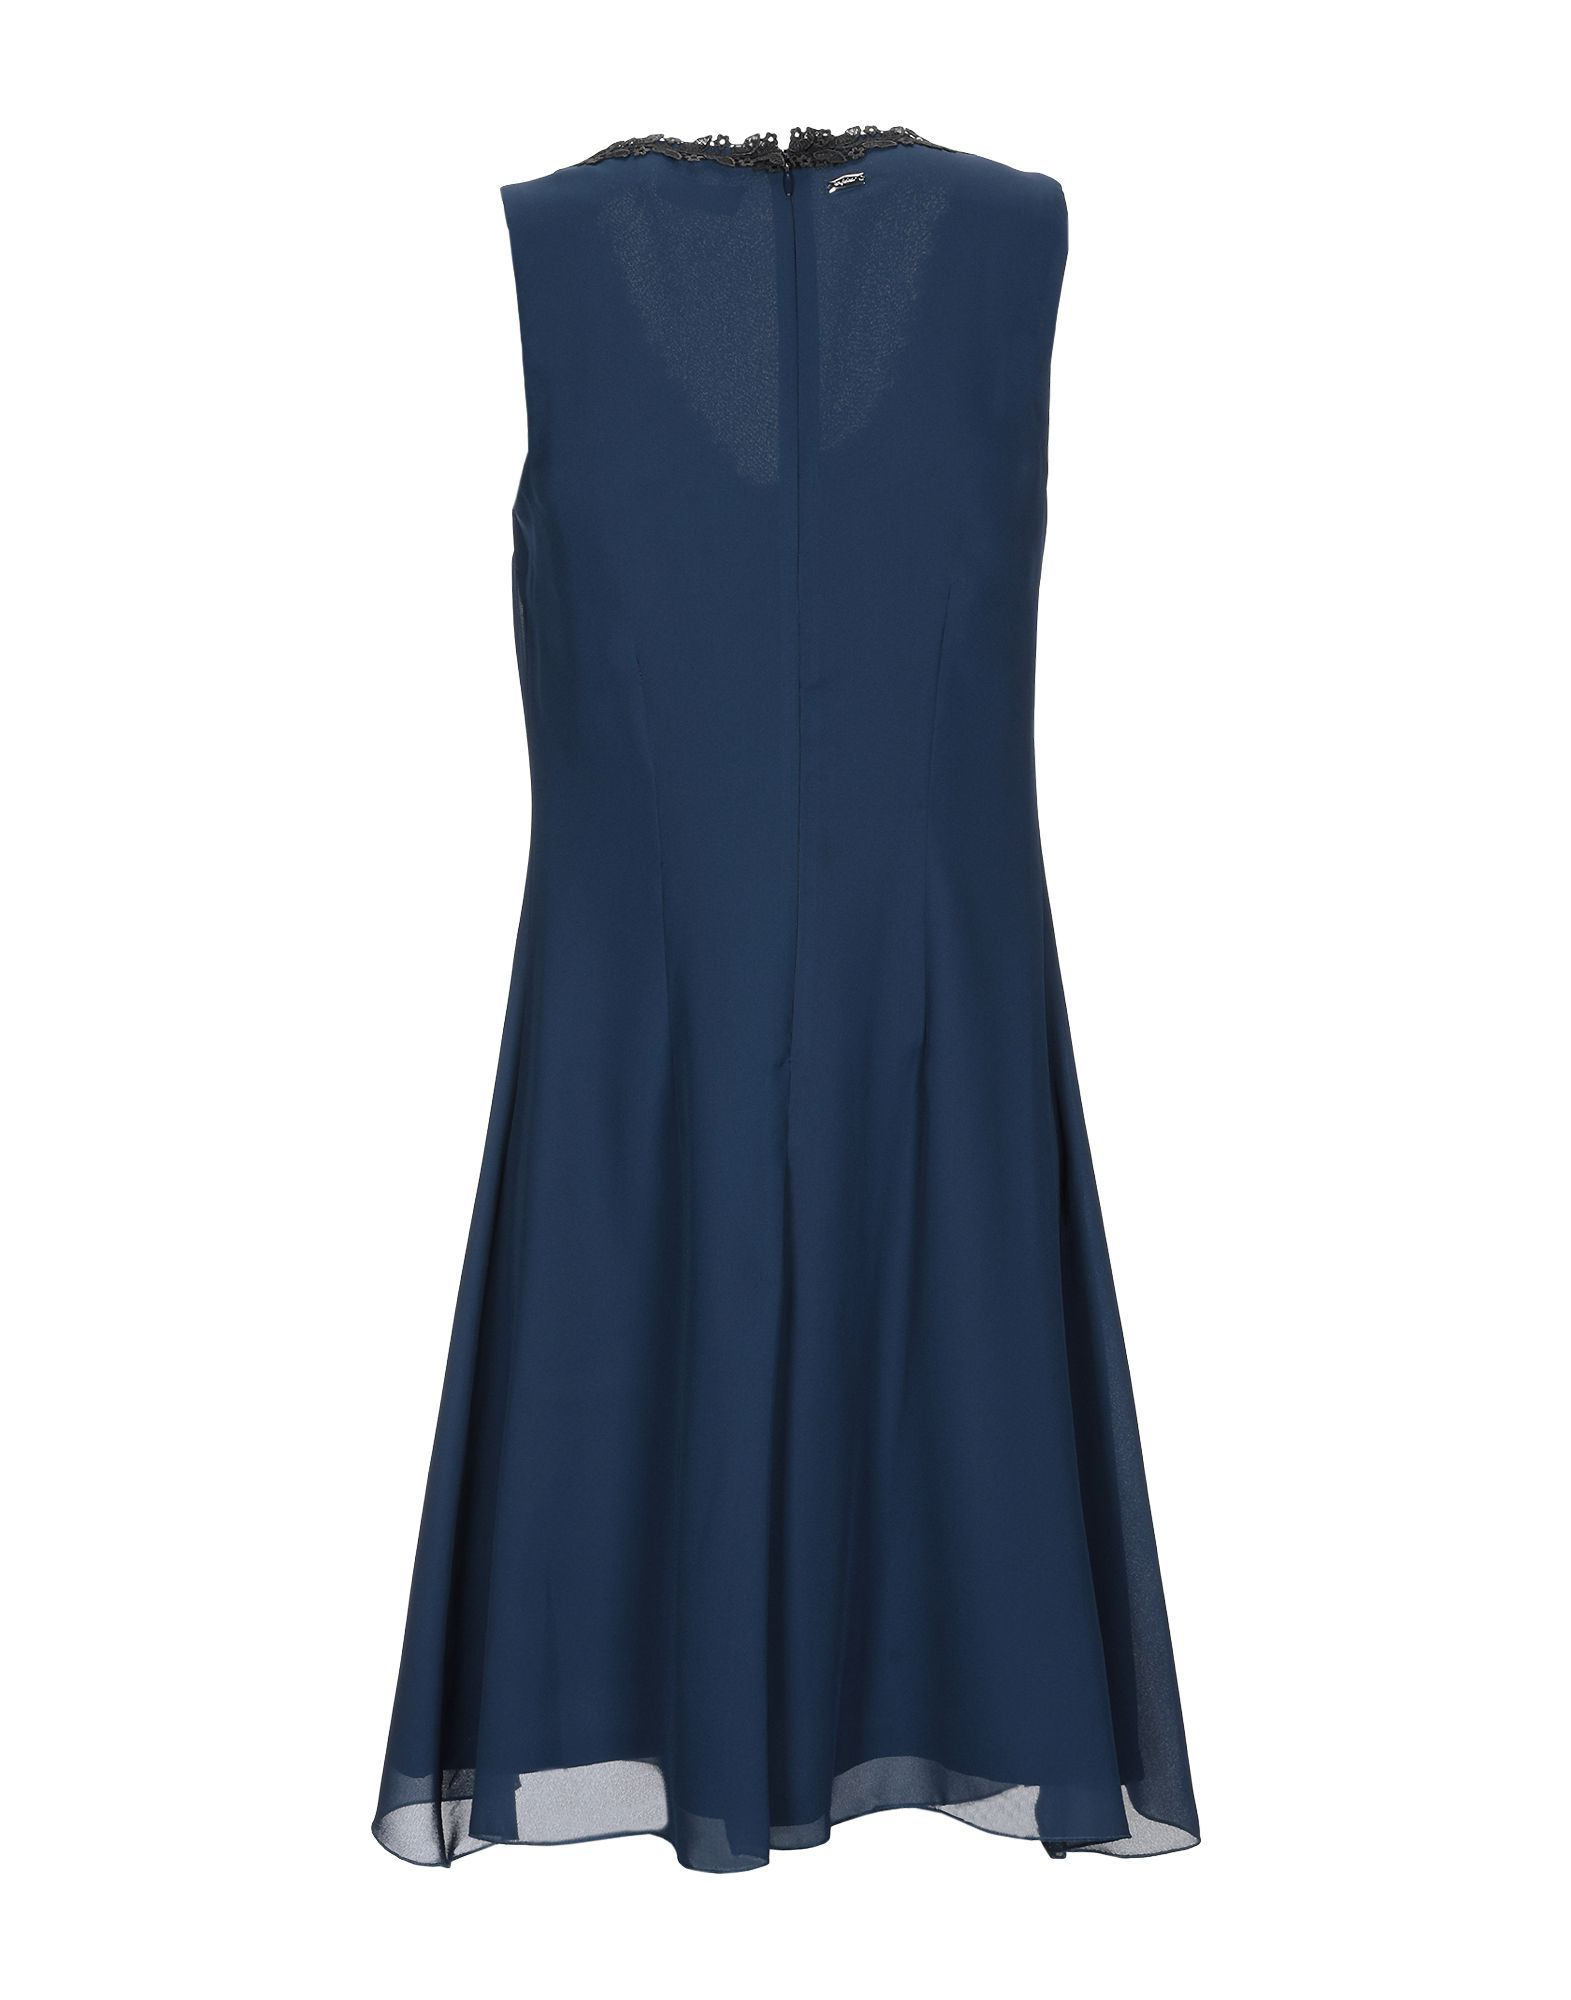 Byblos Dark Blue Sleeveless Dress